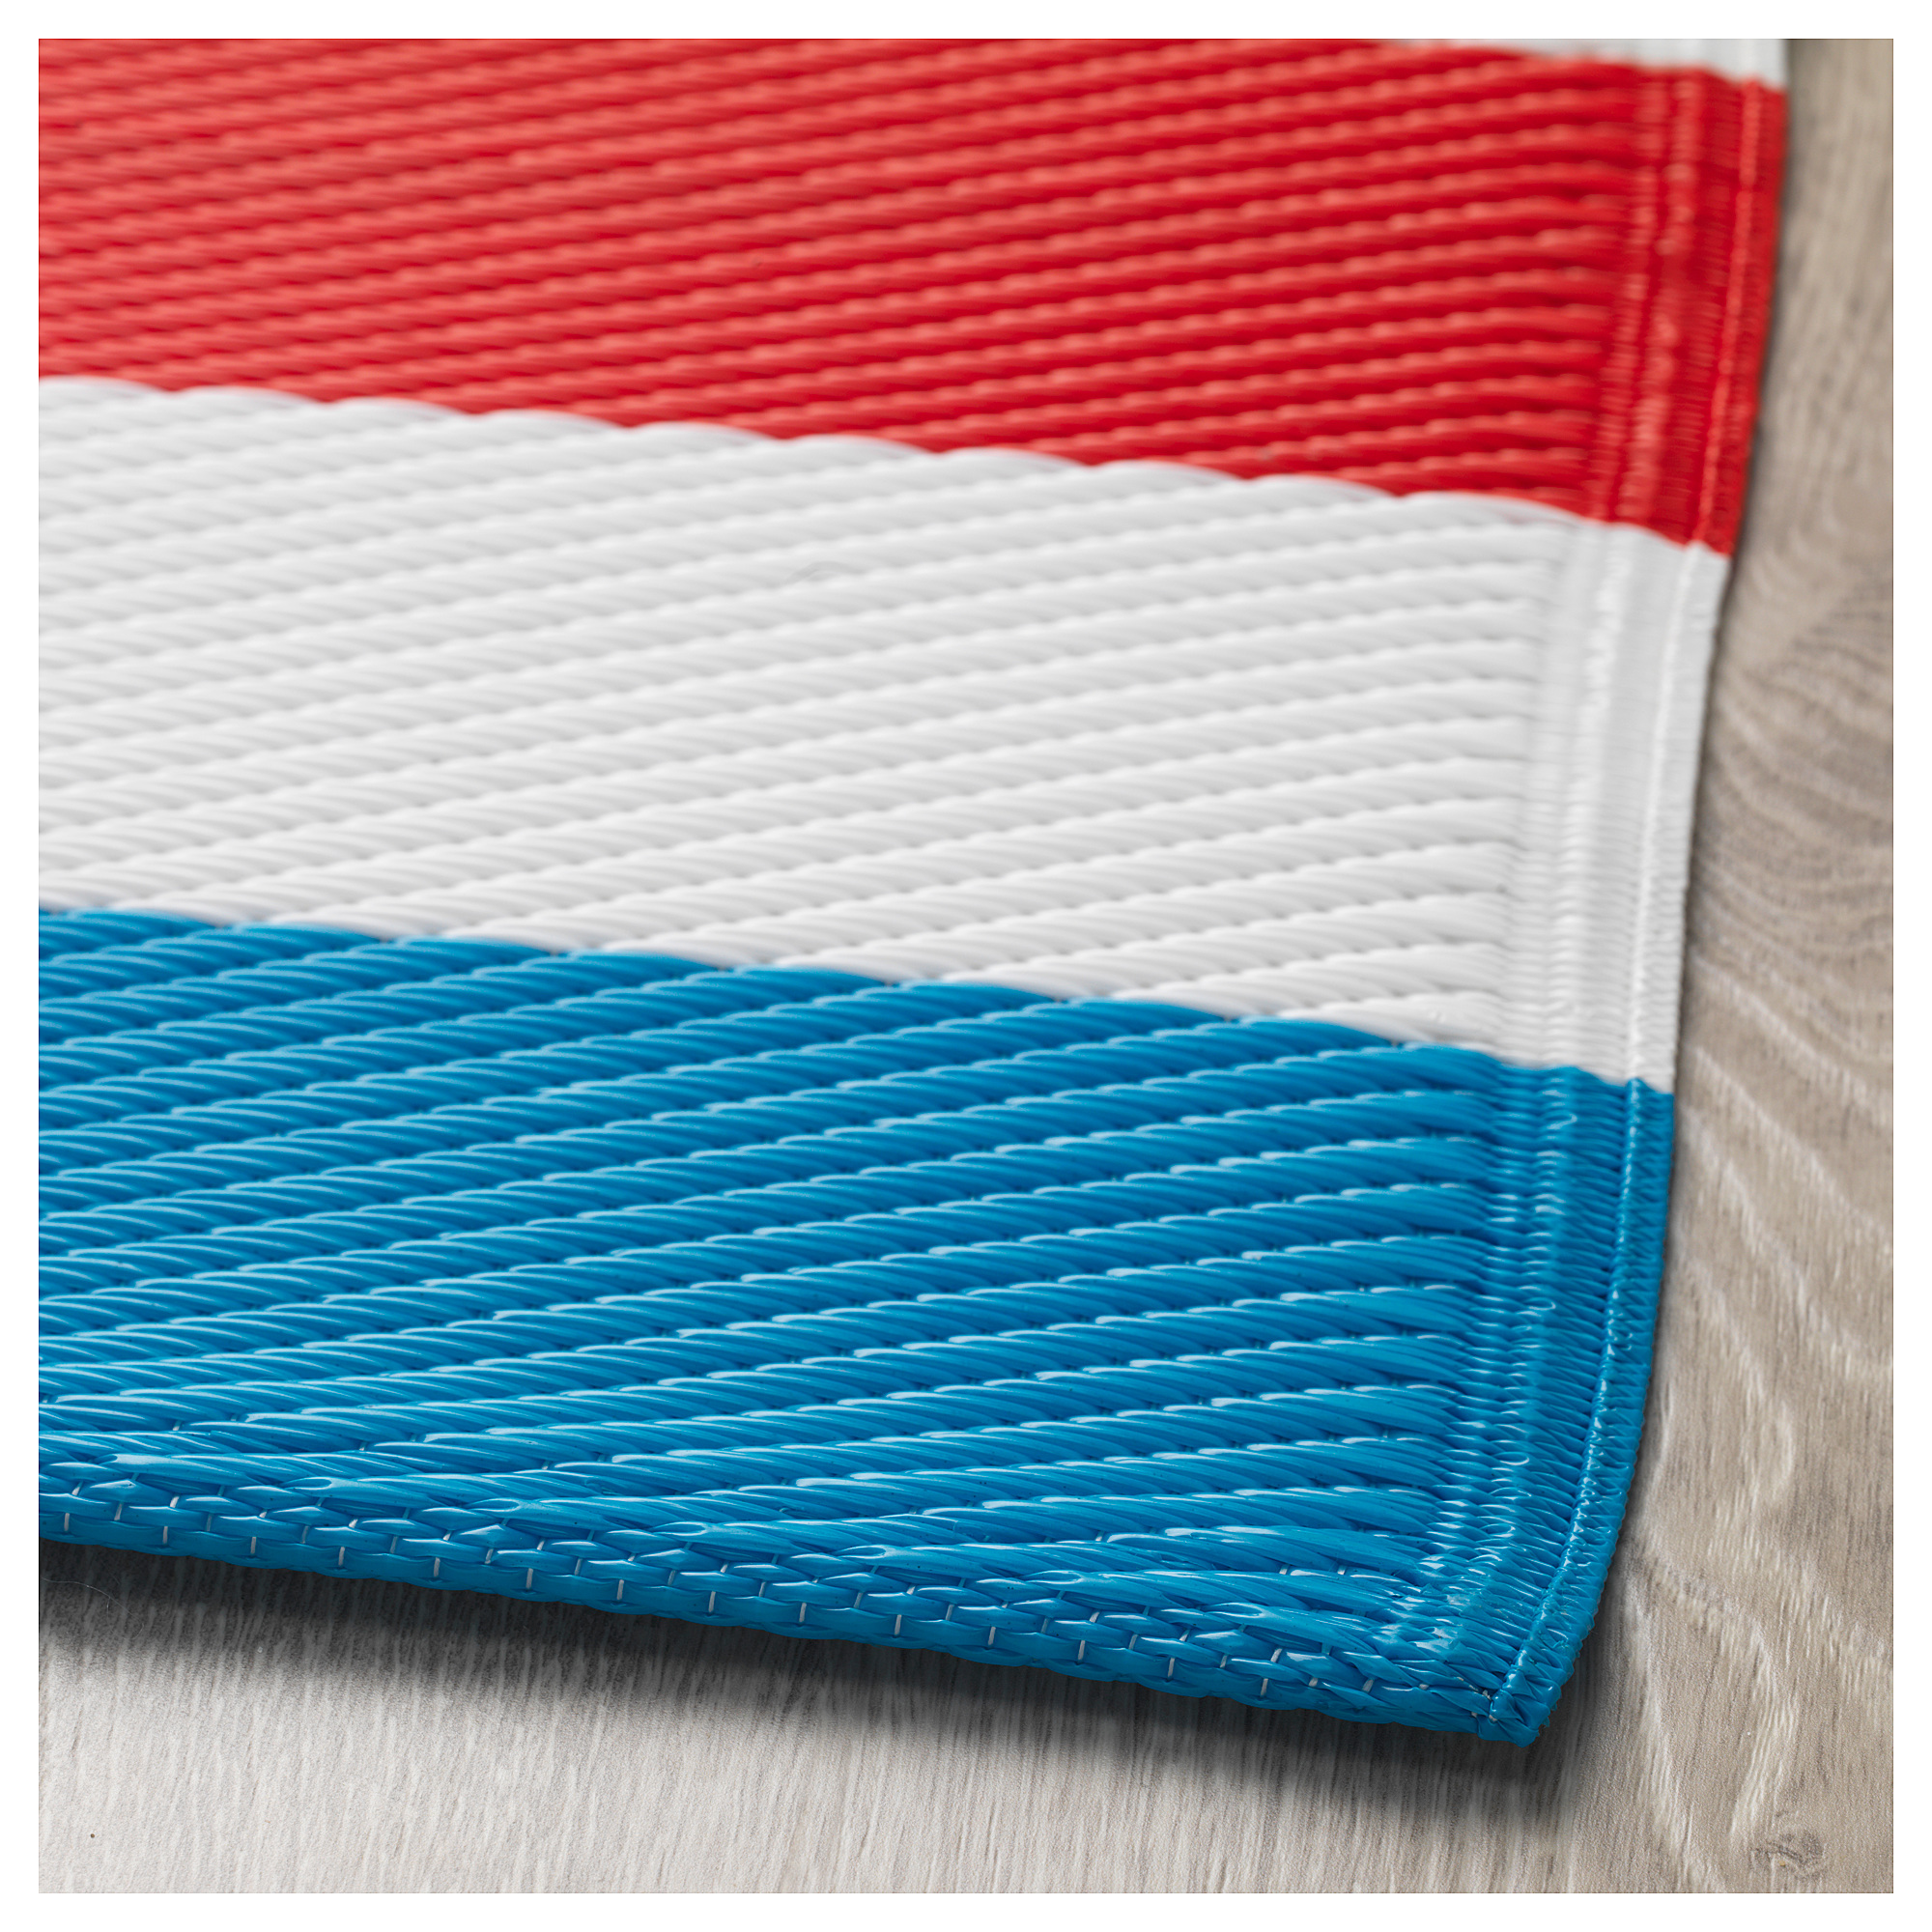 SOMMAR 2019 - rug, flatwoven, in/outdoor/blue white/red ...